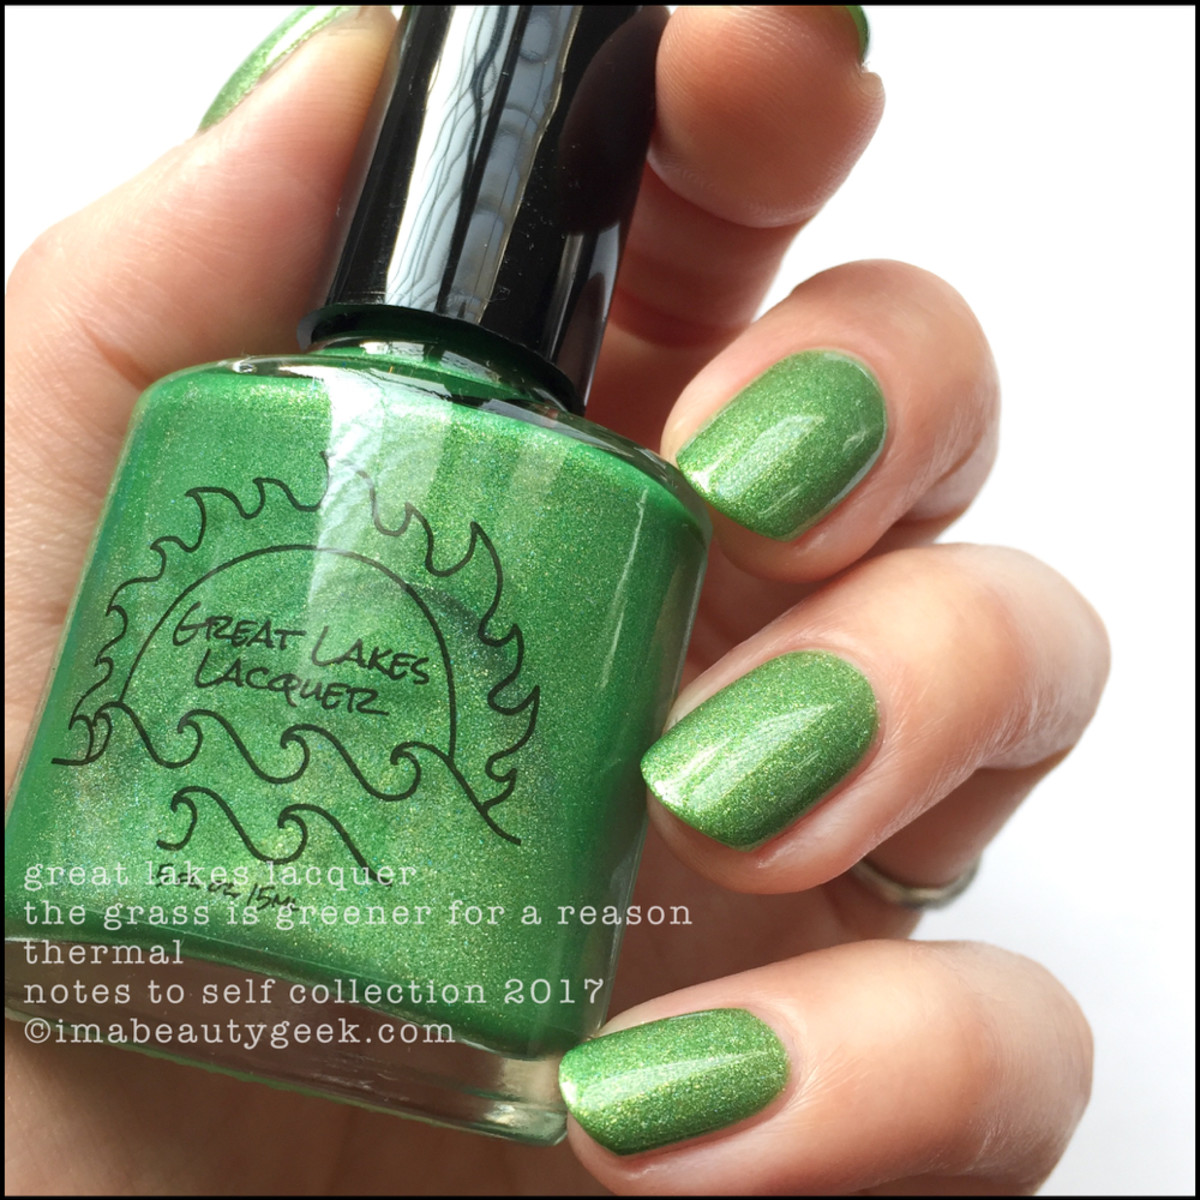 Great Lakes Lacquer The Grass is Greener for a Reason 1 _ Great Lakes Lacquer Notes to Self Thermal Collection 2017